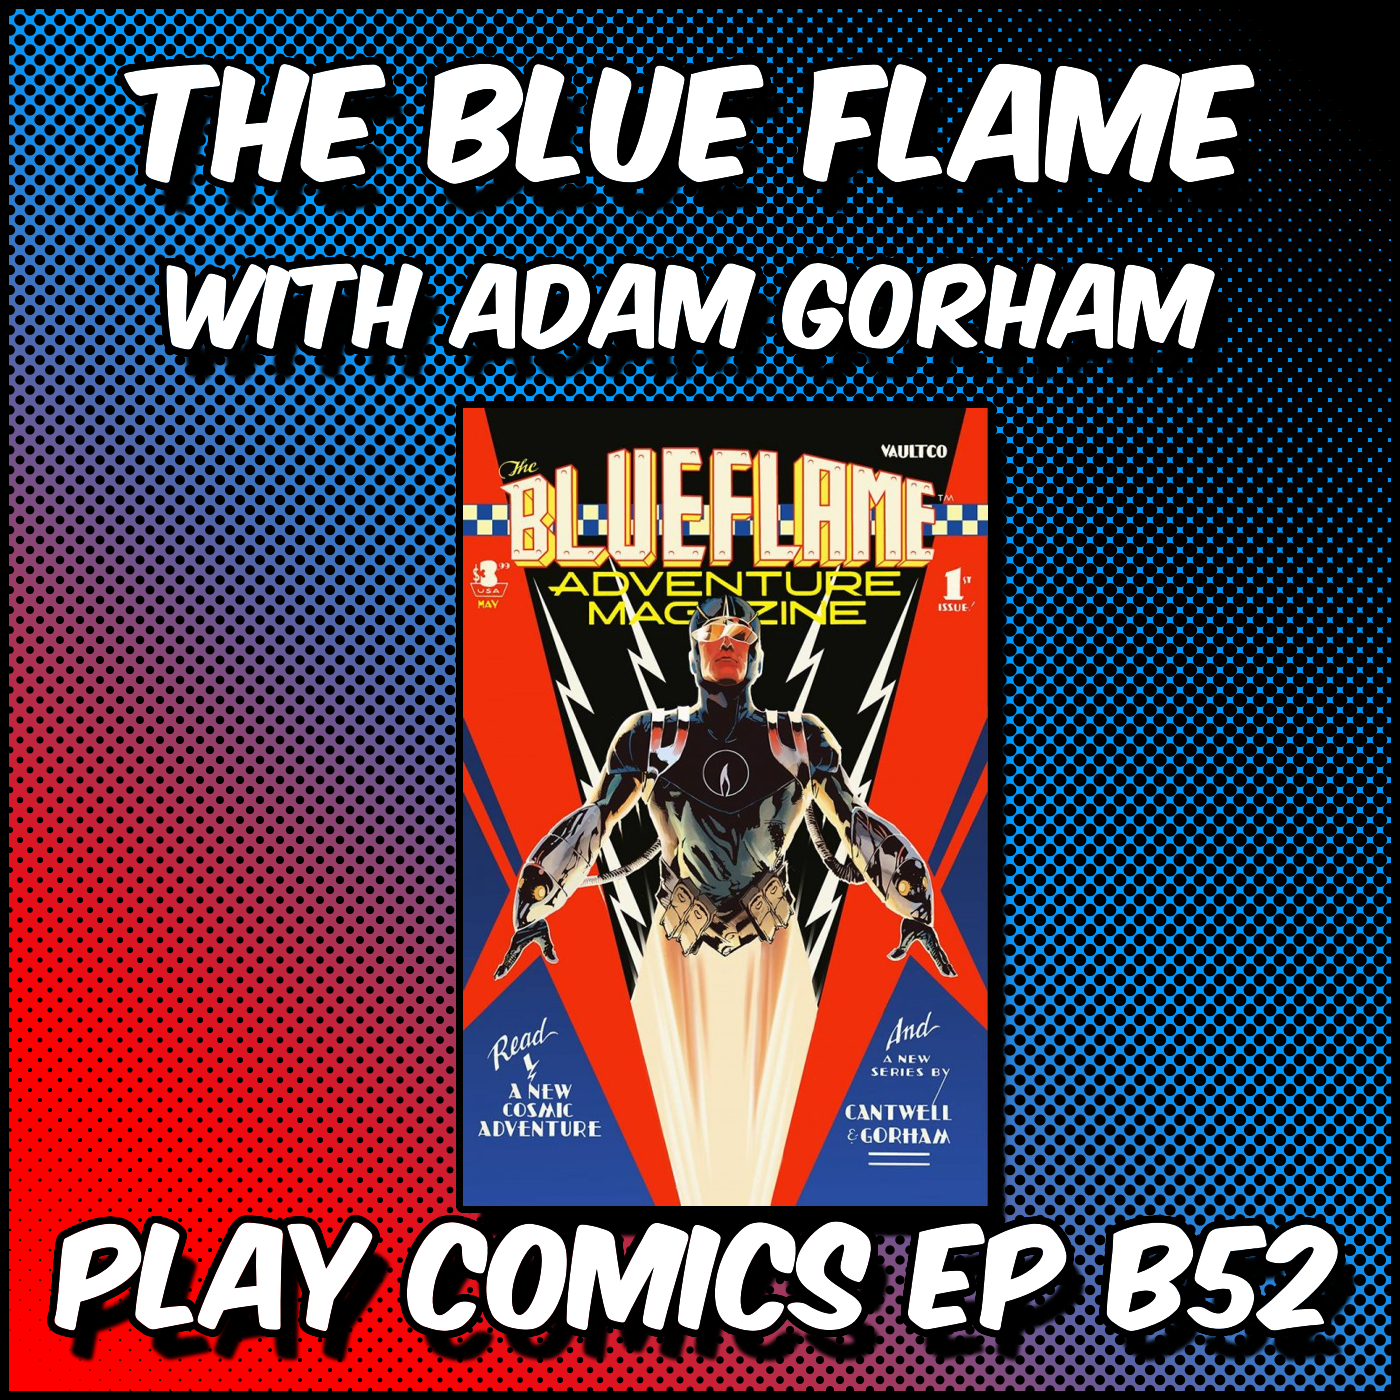 The Blue Flame with Adam Gorham